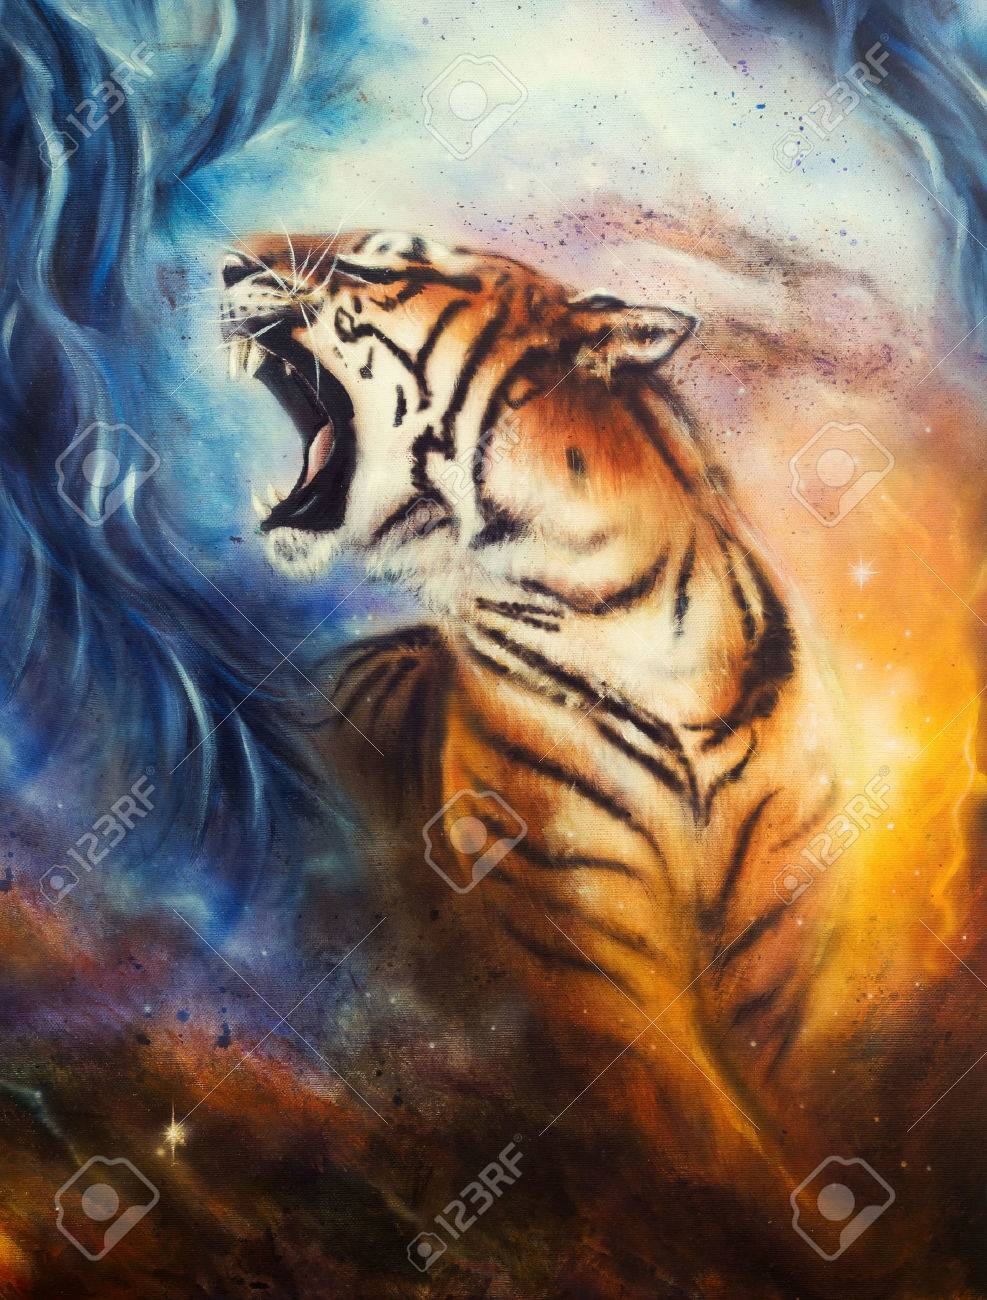 A Beautiful Airbrush Painting Of A Roaring Tiger On A Abstract